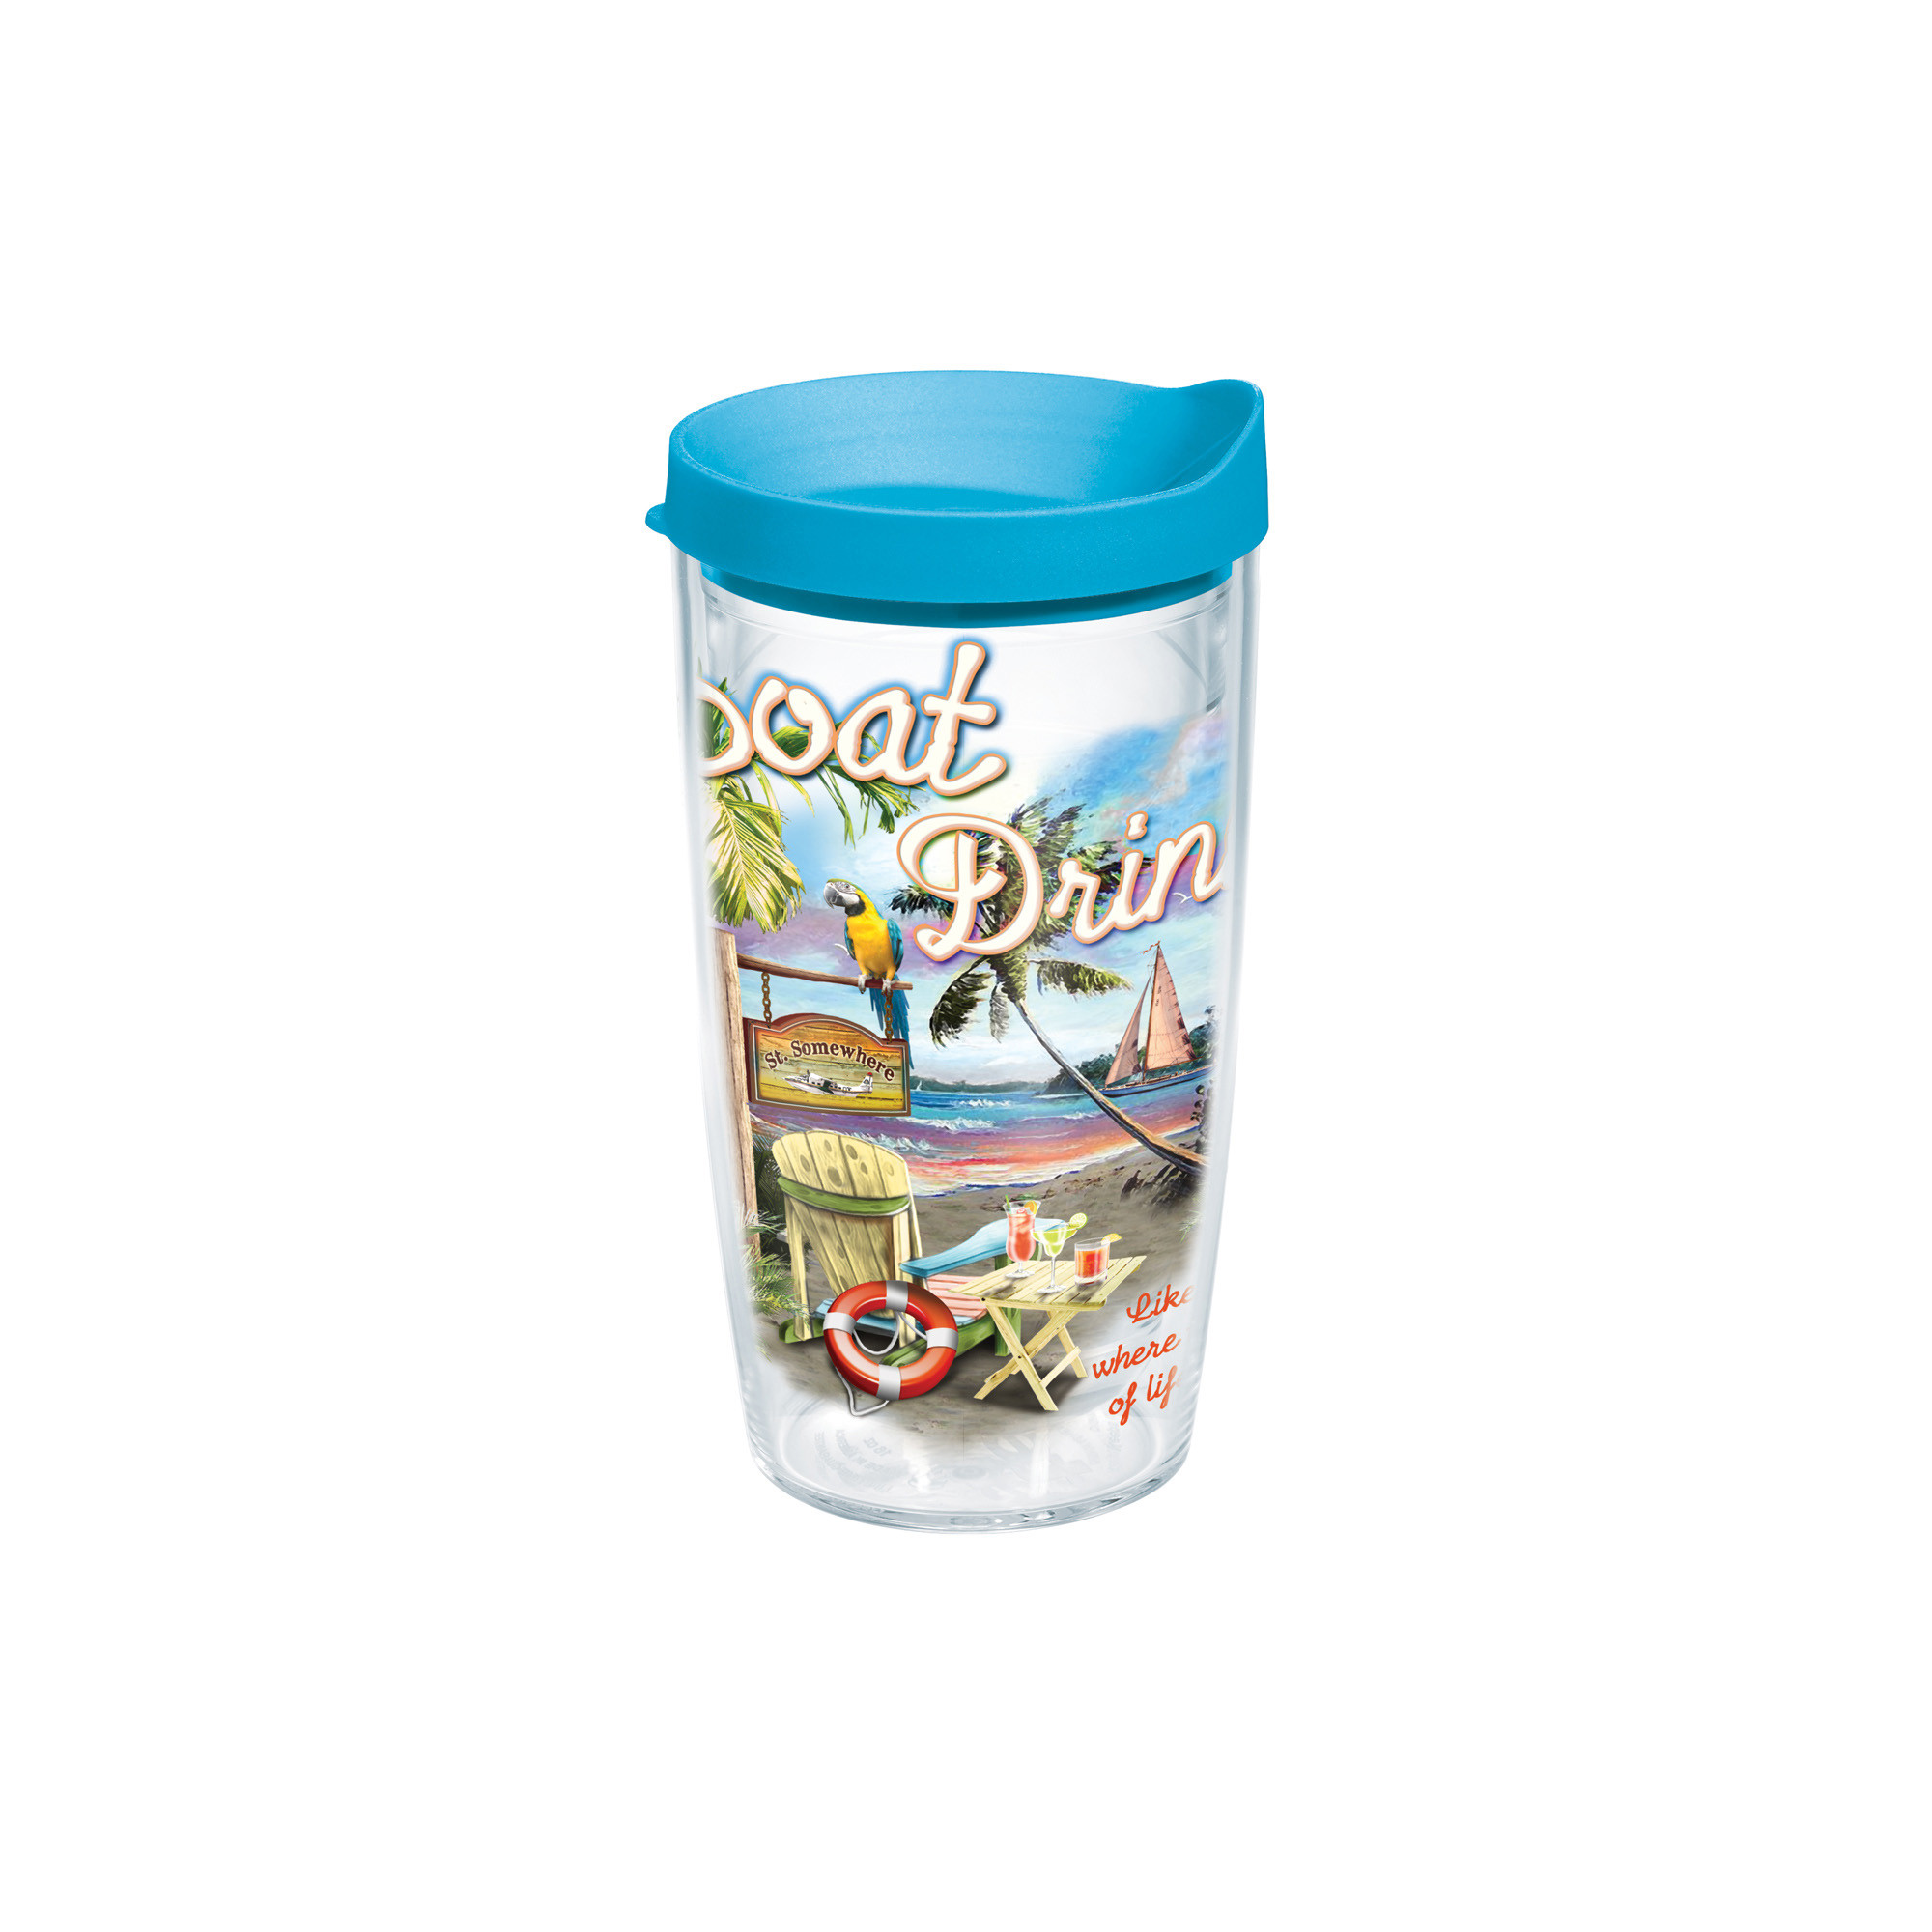 16OZ BOAT DRINKS TERVIS